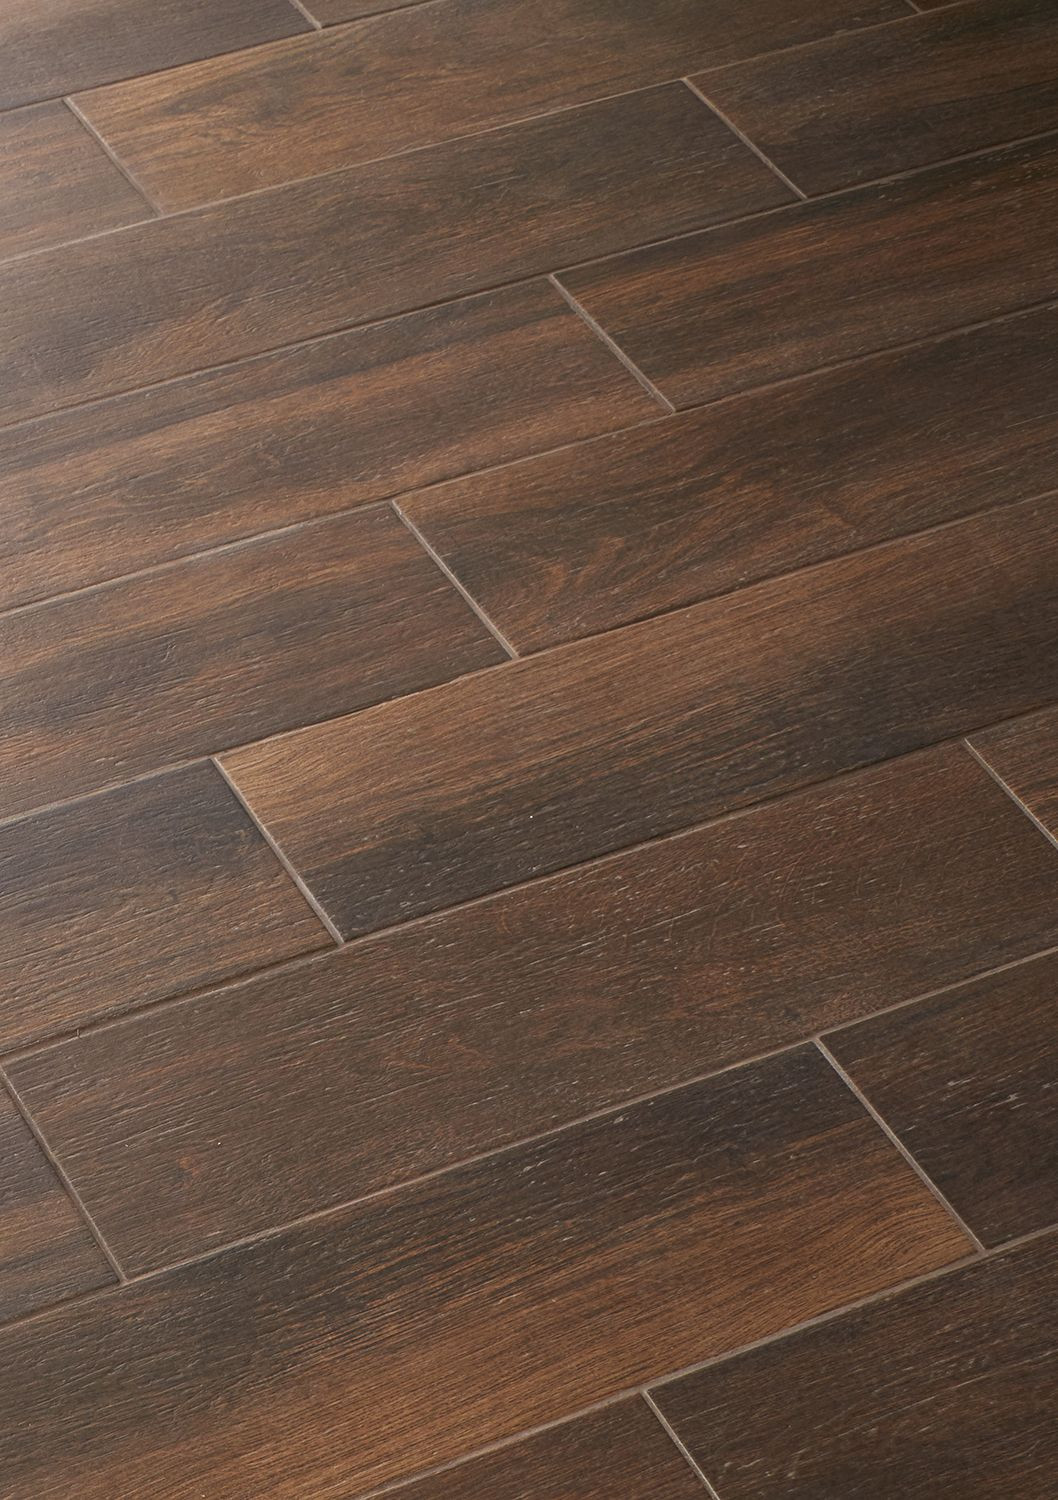 hardwood floor refinishing detroit of evermore porcelain tile is daltile features slipdefense technology pertaining to making it 50 more resistant than ordinary tile go ahead step fearlessly evermore is available in three colors sierra wood autumn wood shown and